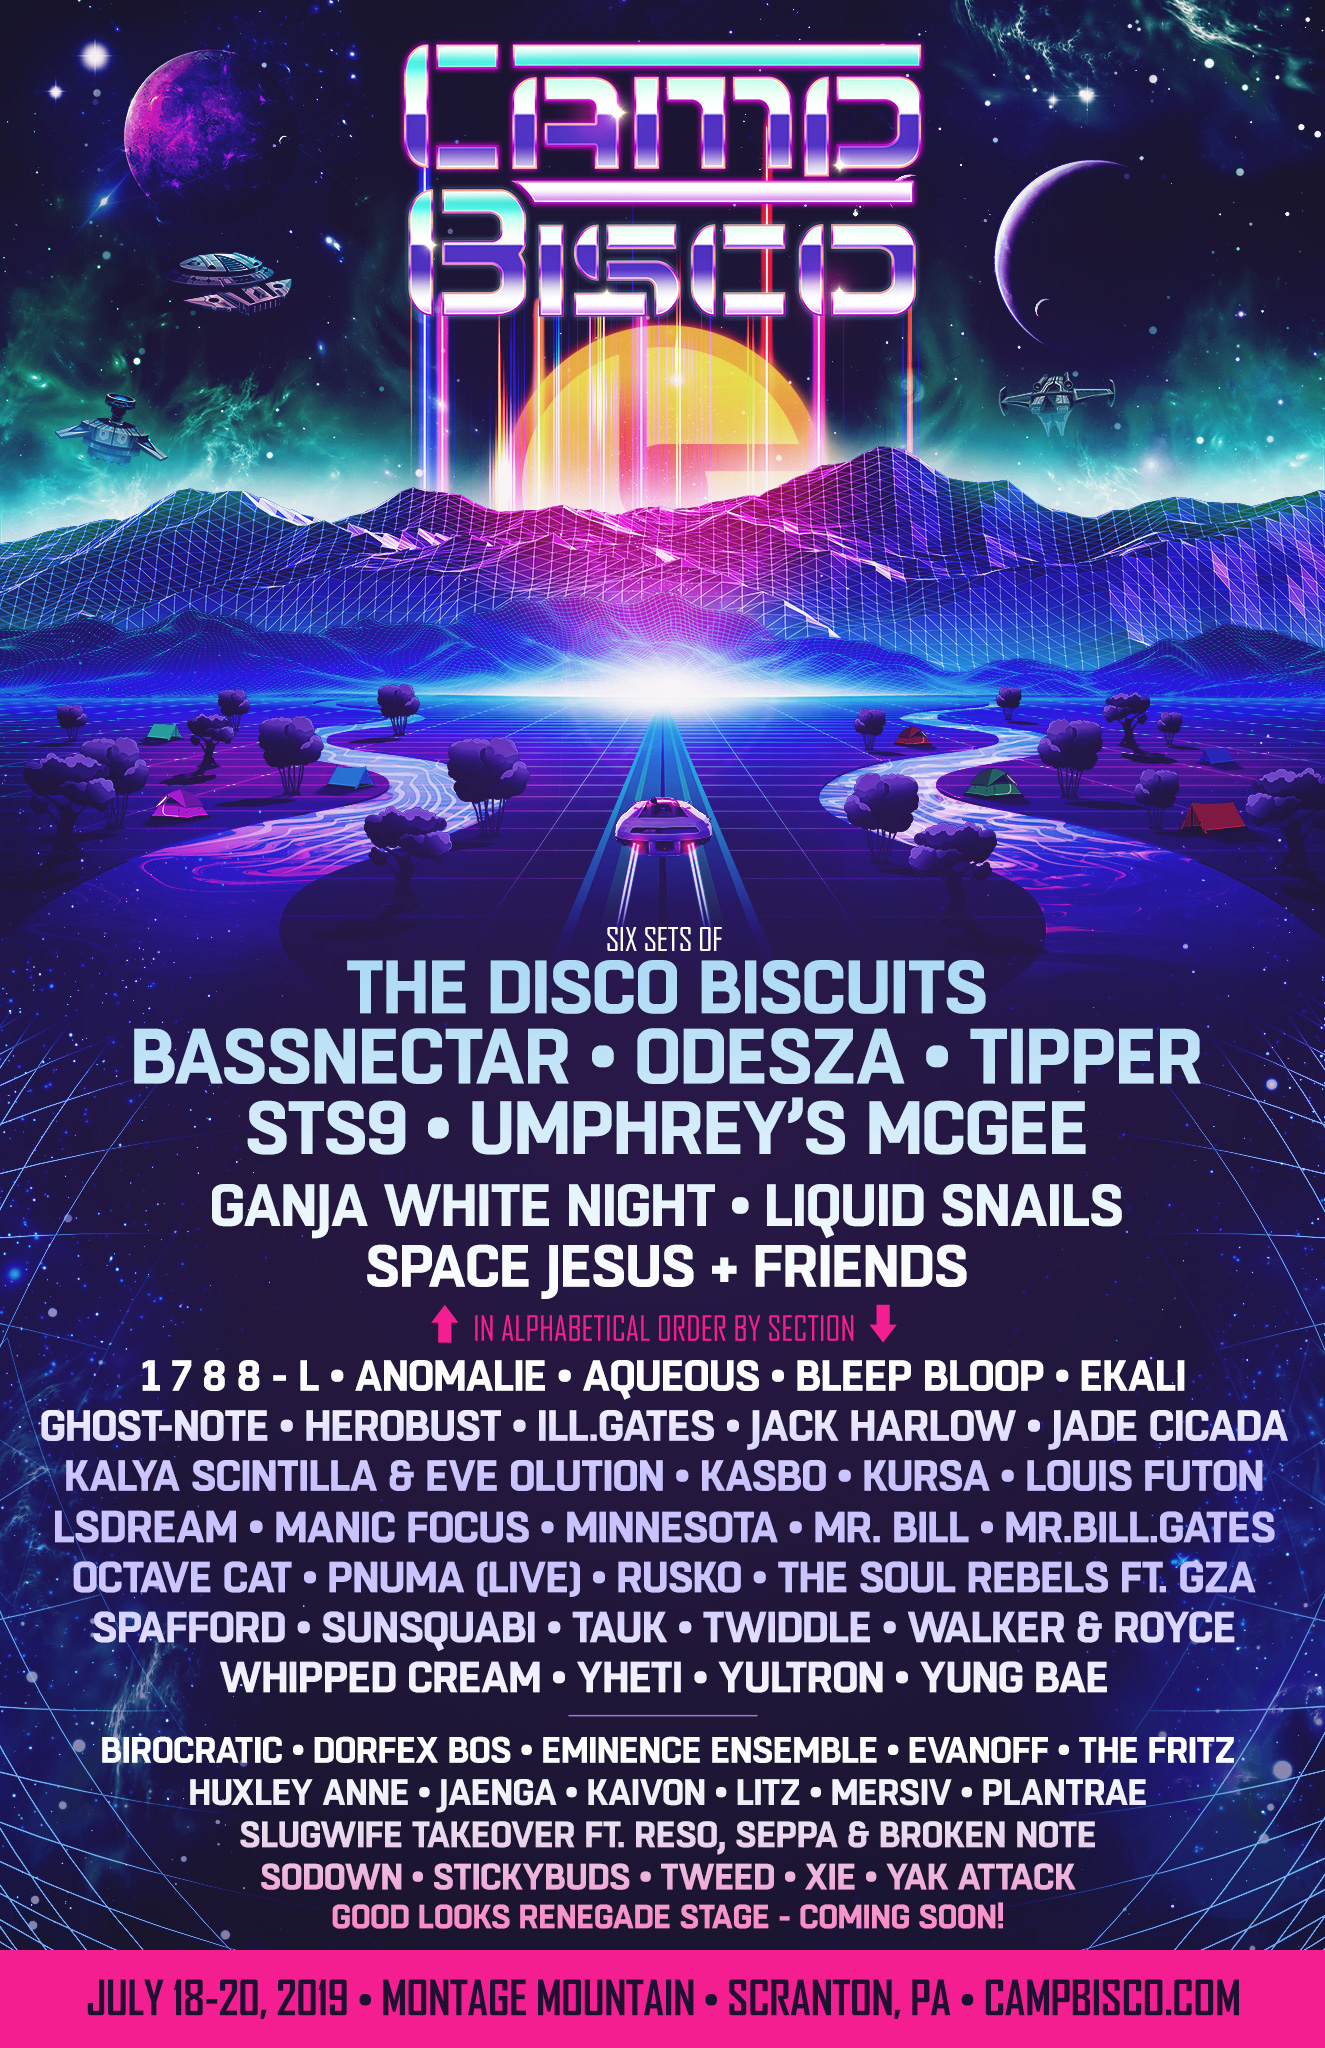 Bassnectar at Camp Bisco 2019